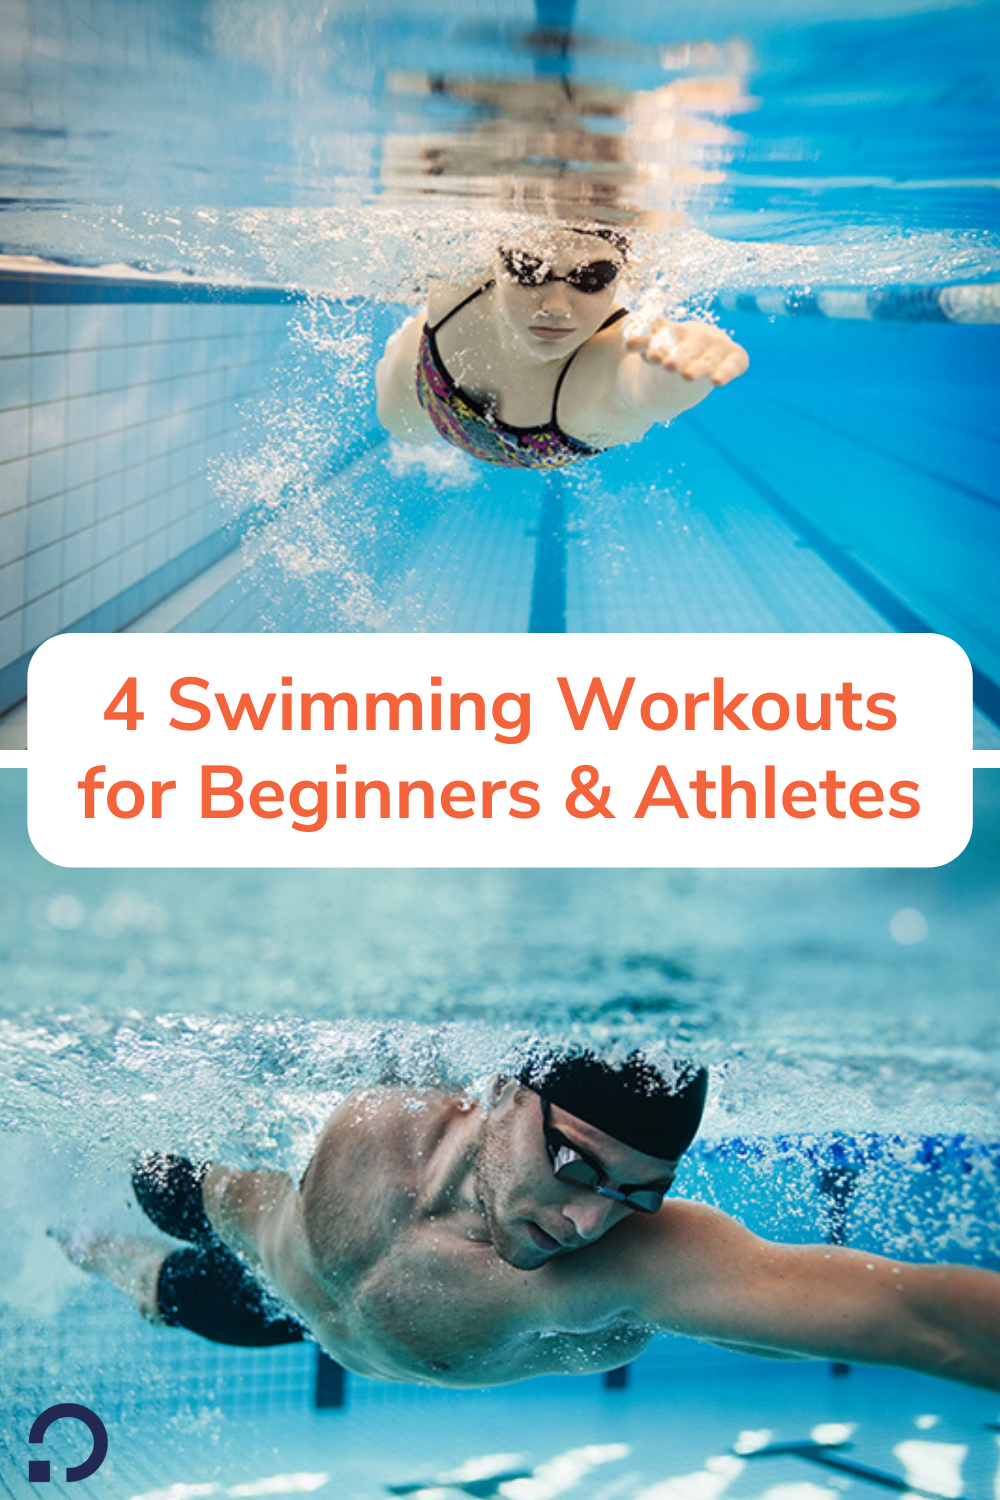 swimming workouts- pin image